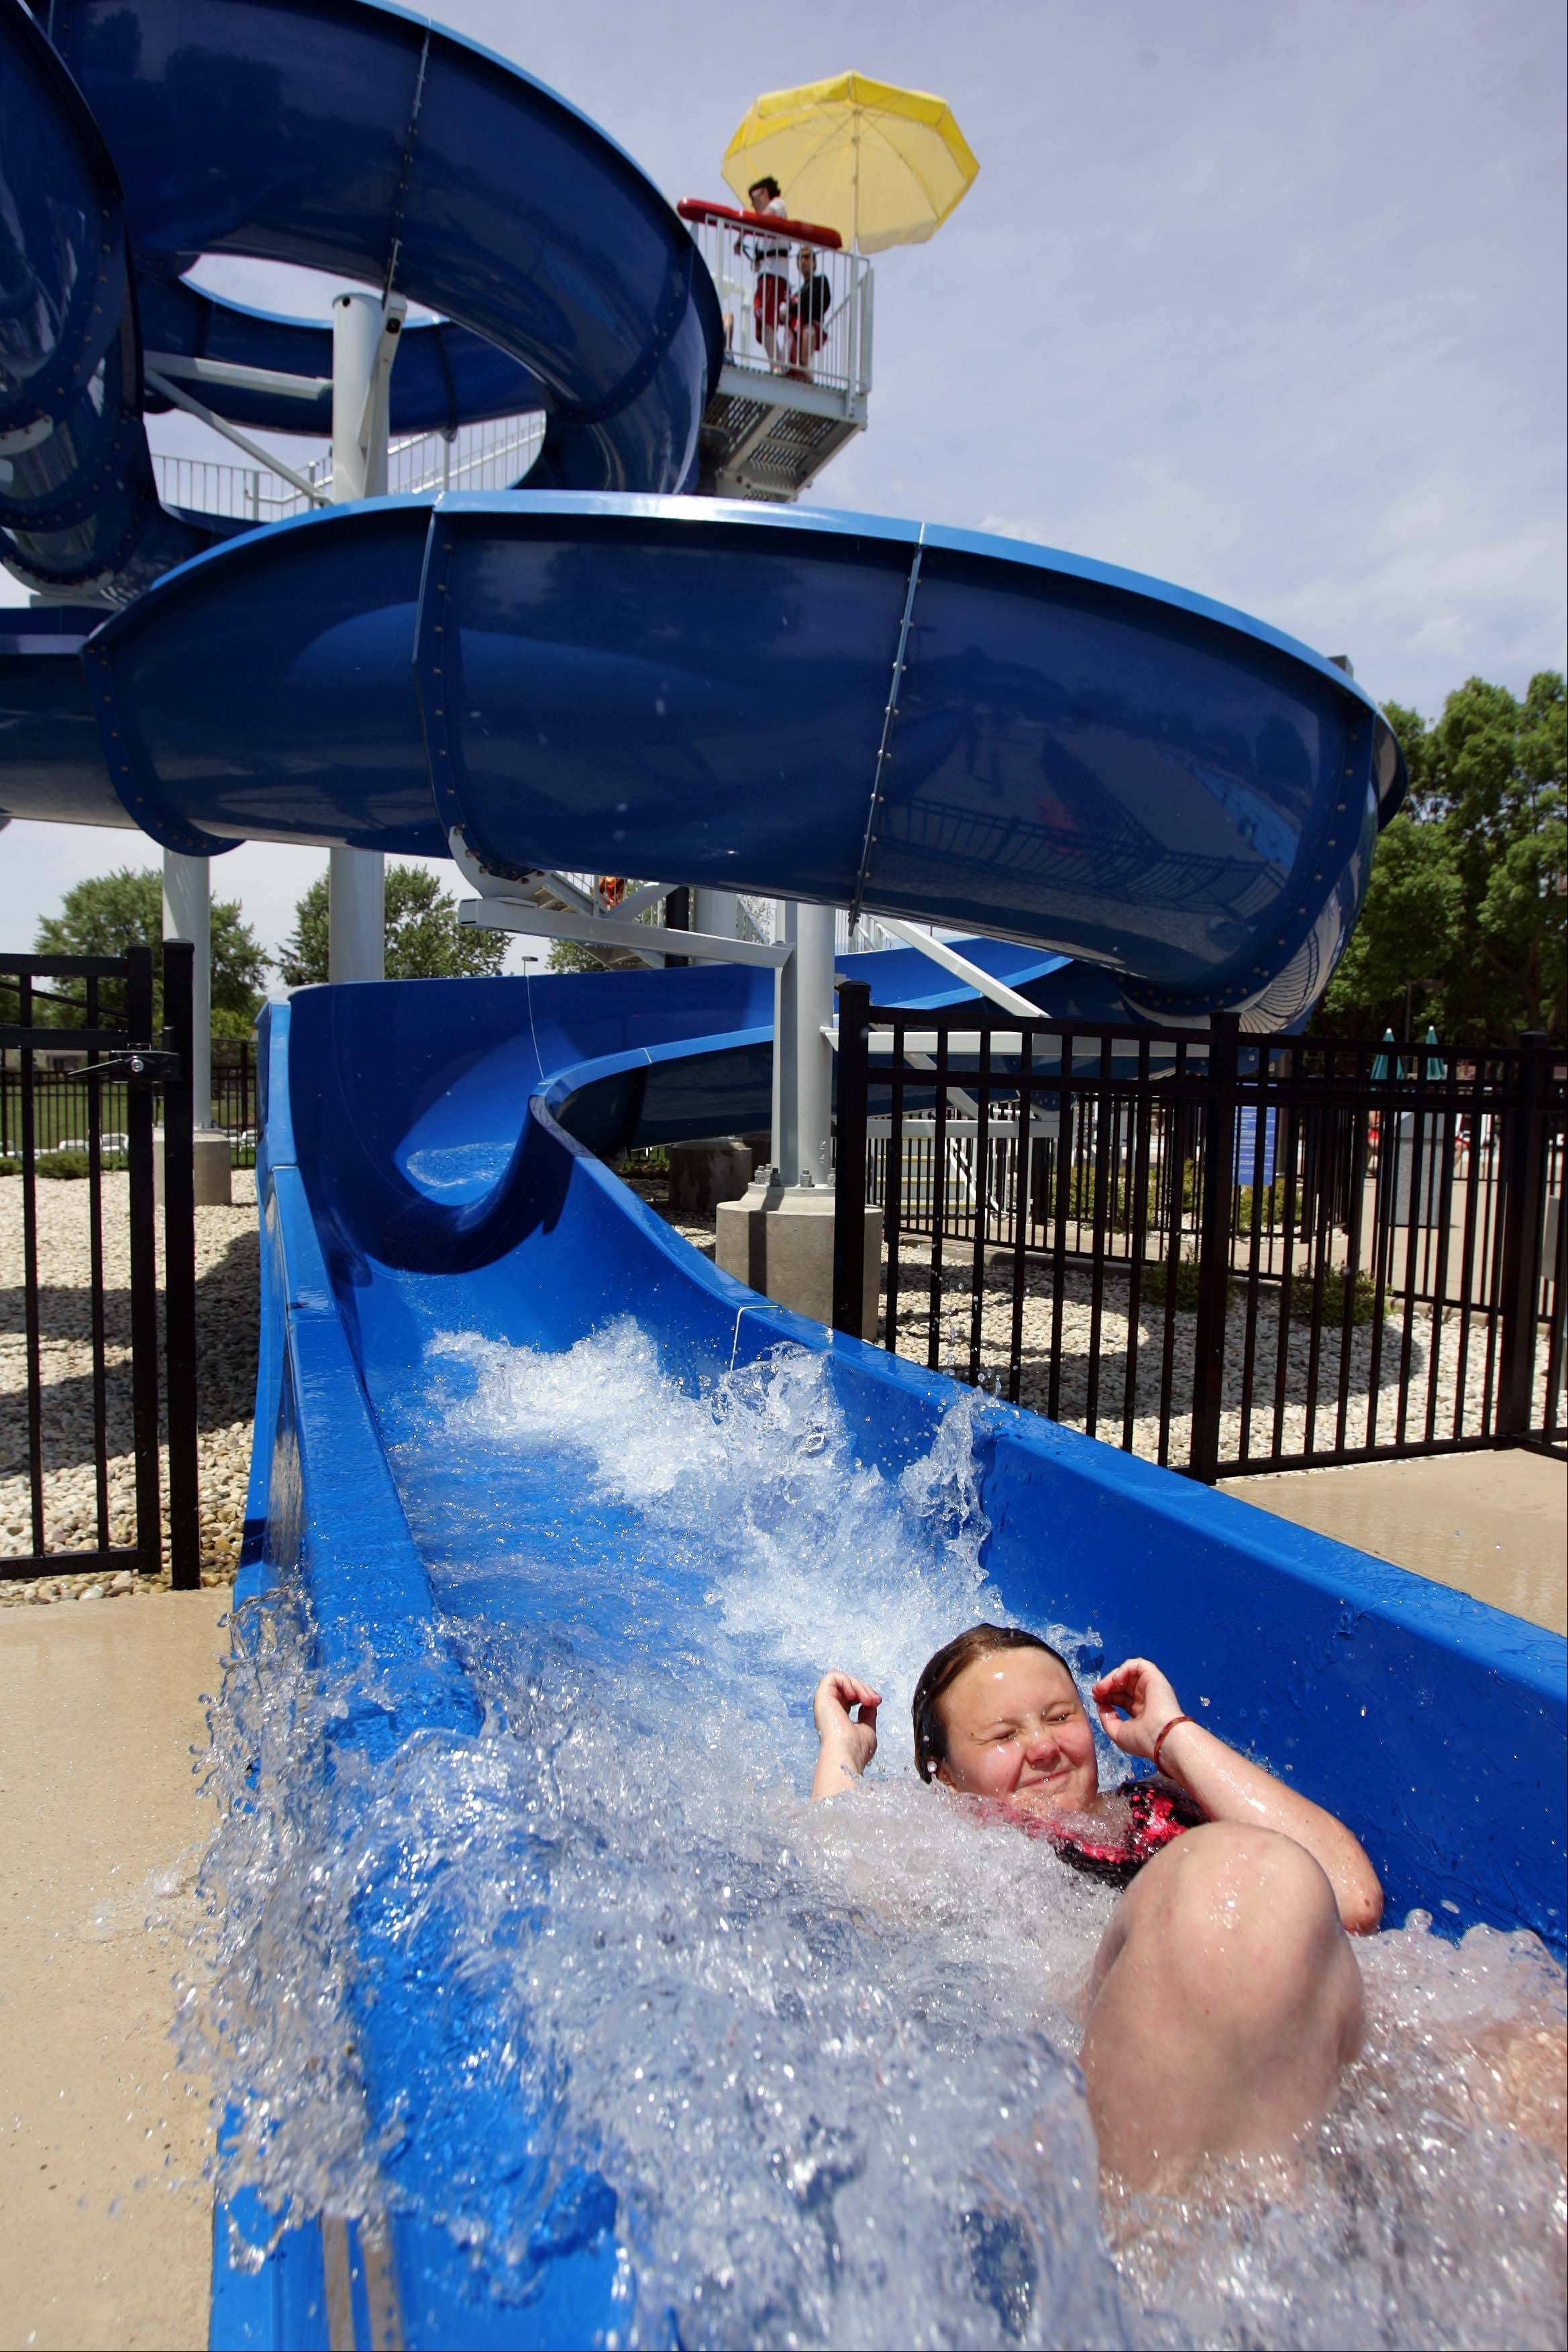 Ten-year-old Hannah Potocki rockets down the new slide at Willow Stream Pool in Buffalo Grove which will have it's grand opening this weekend. Potocki, of Buffalo Grove, was at the pool with the Cycle and Surf camp.